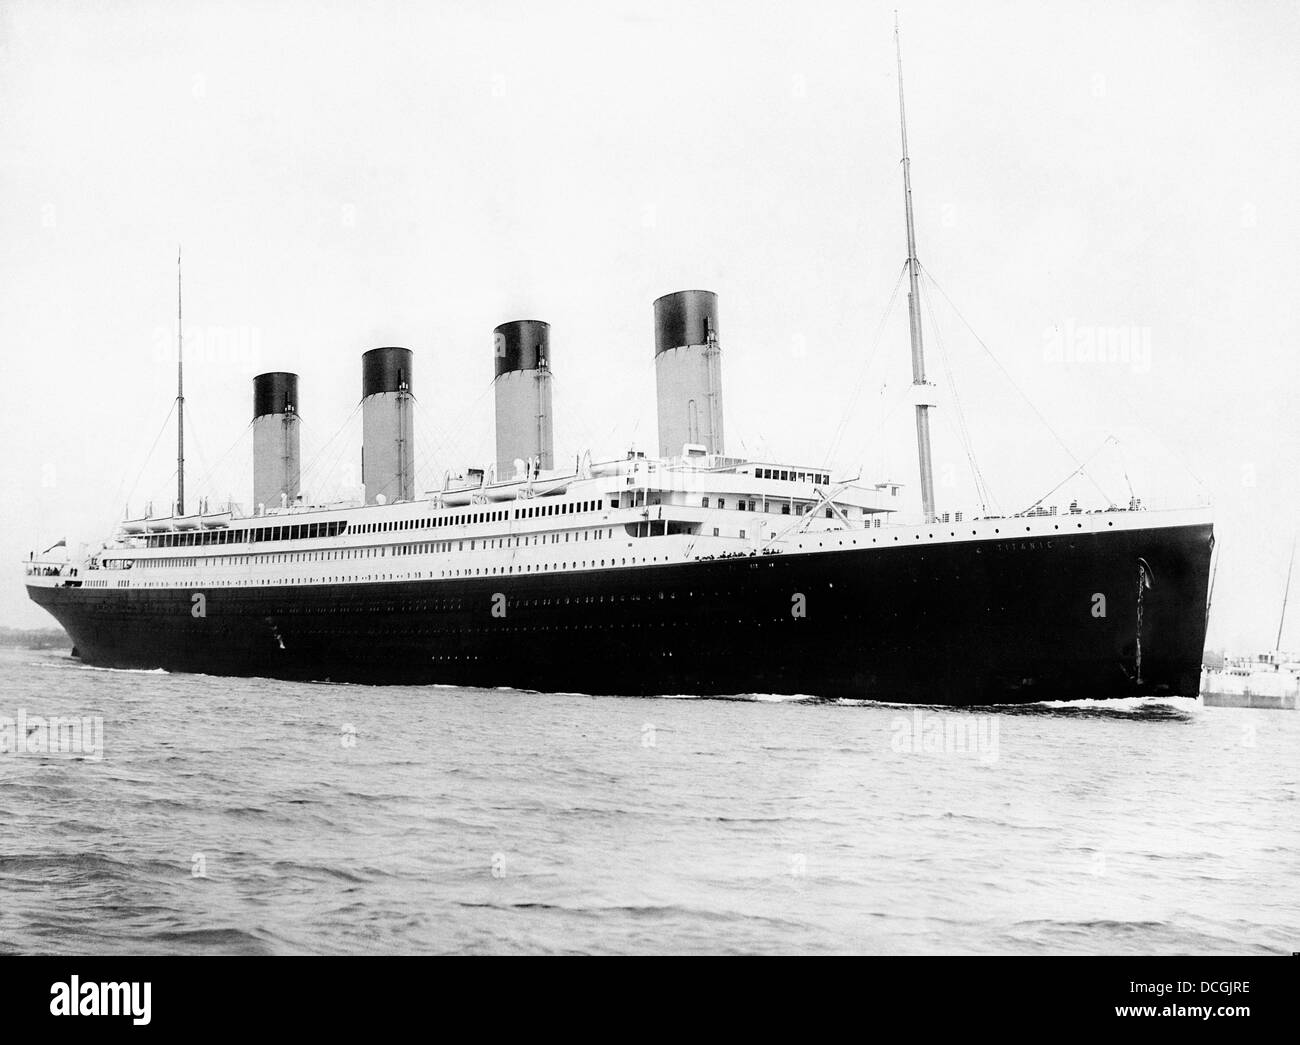 Digitally restored vintage maritime history photo of the RMS Titantic departing Southampton on April 10, 1912. - Stock Image